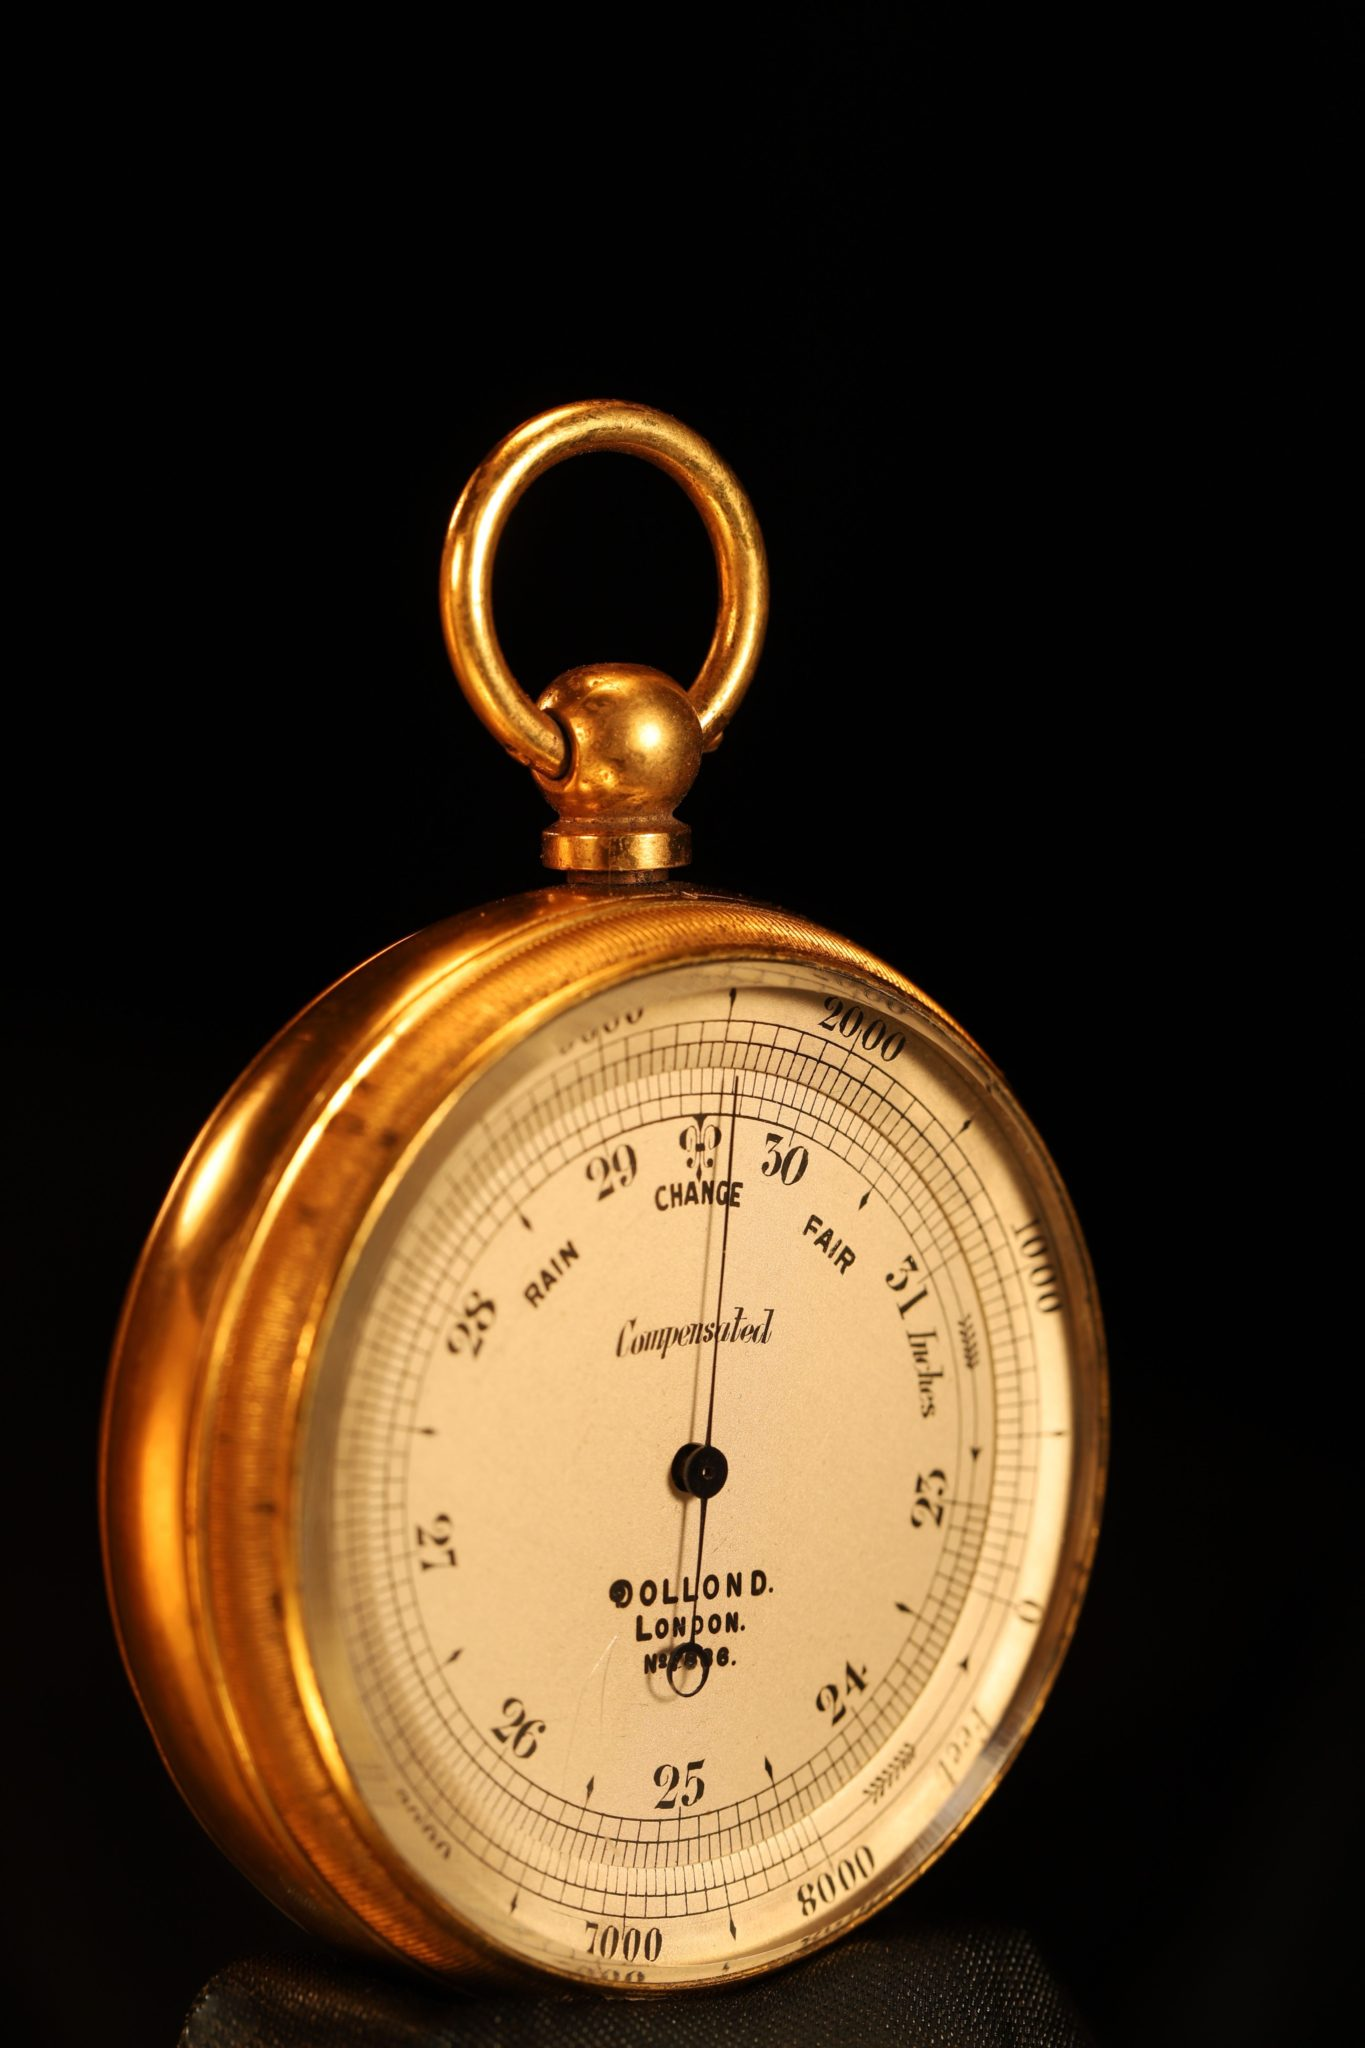 Image of Pocket Barometer Travel Compendium by Dollond No 7886 c1900